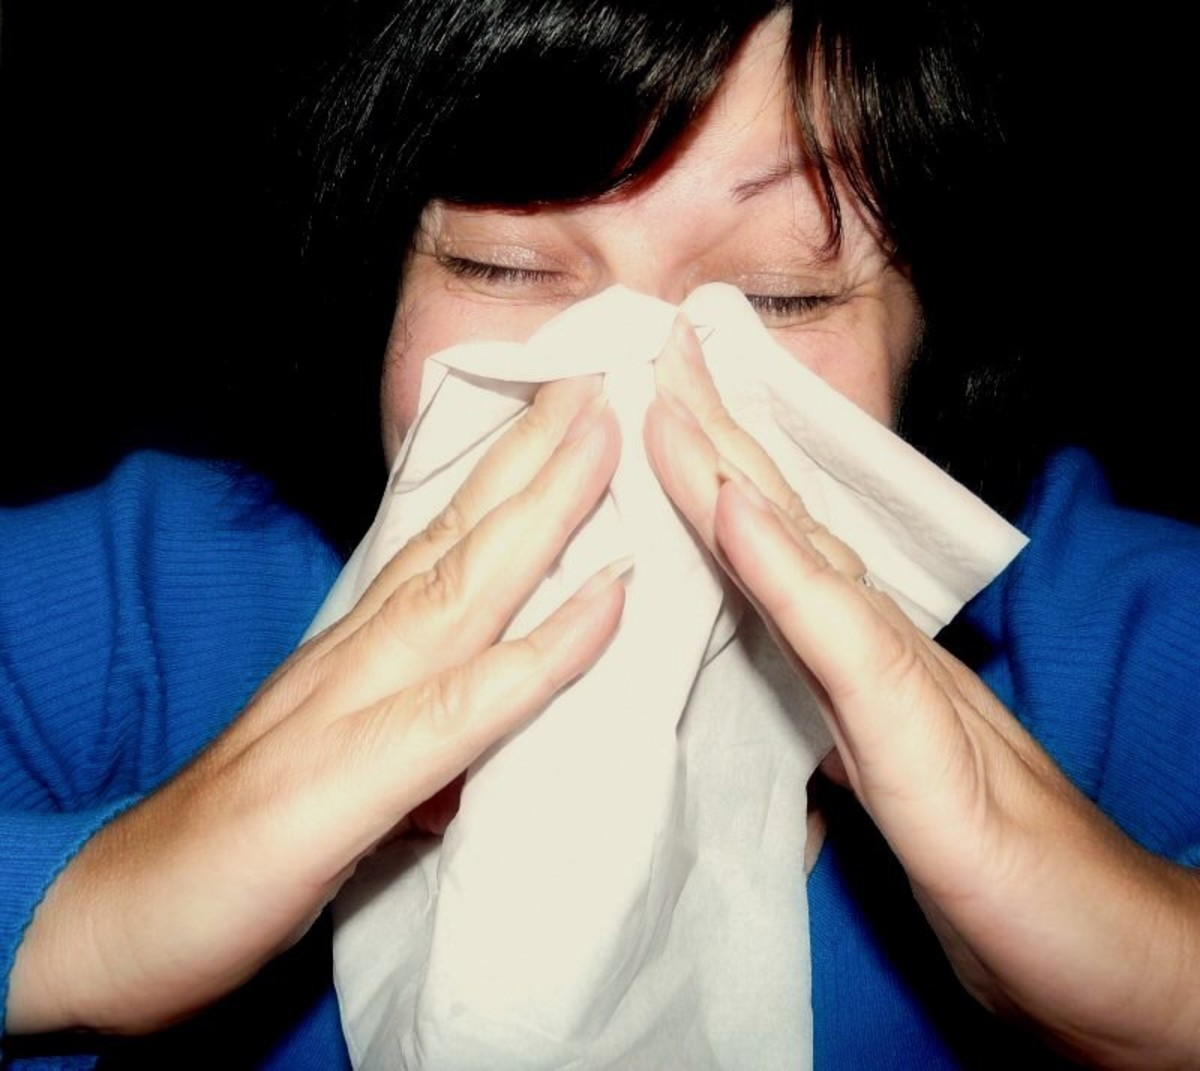 We produce extra mucus when we have a cold or the flu.